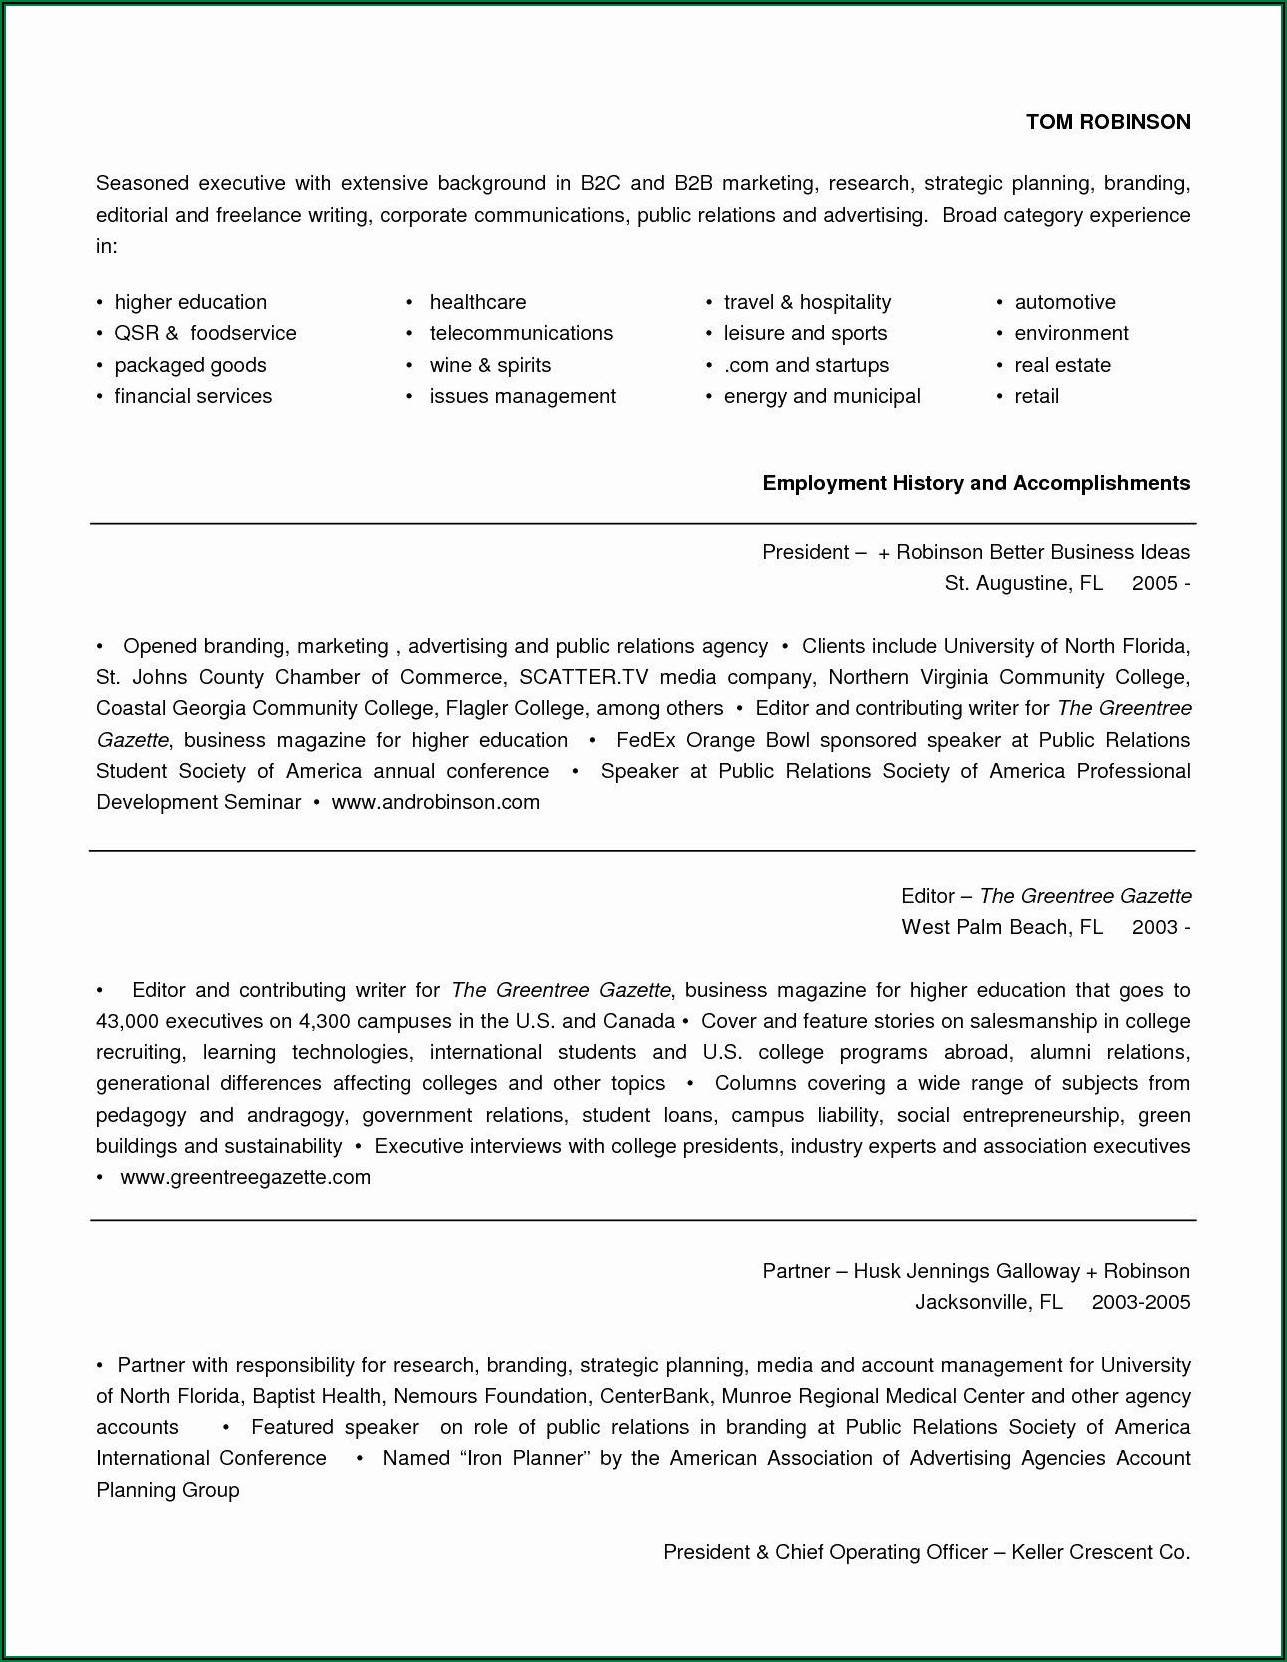 Business Plan Template For Small Winery